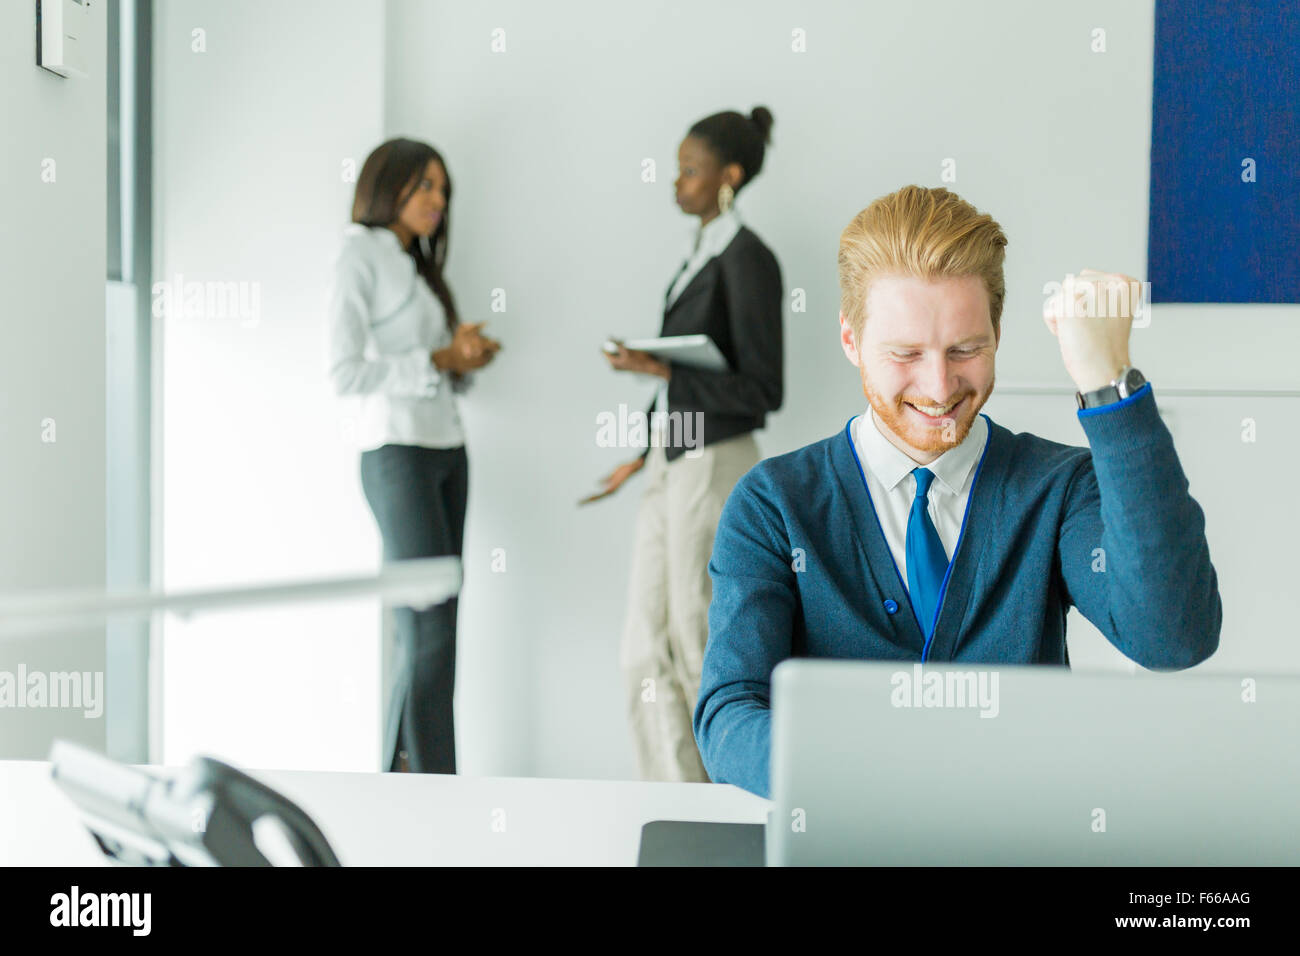 Successful businessman being happy for achieving his goals as he sees good news on the laptop - Stock Image